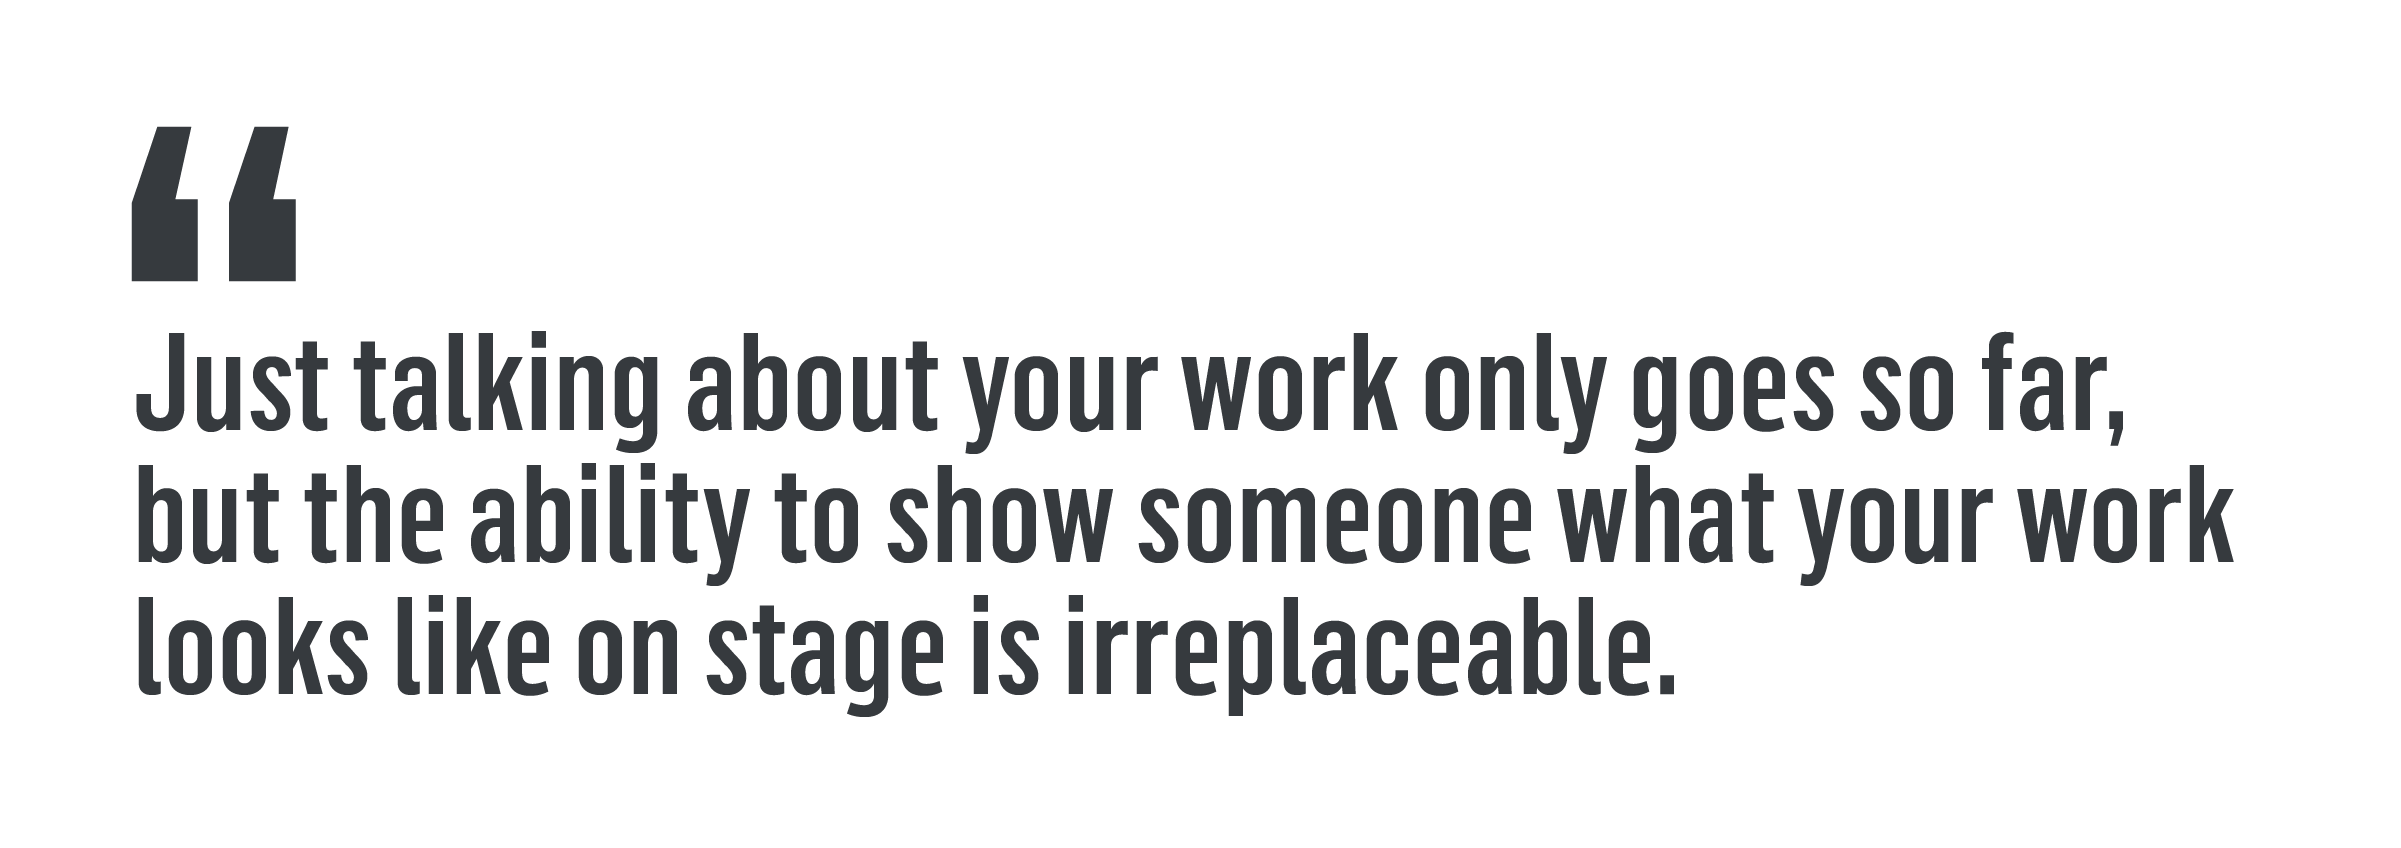 """""""Just talking about your work only goes so far, but the ability to show someone what you work looks like on stage is irreplaceable."""""""